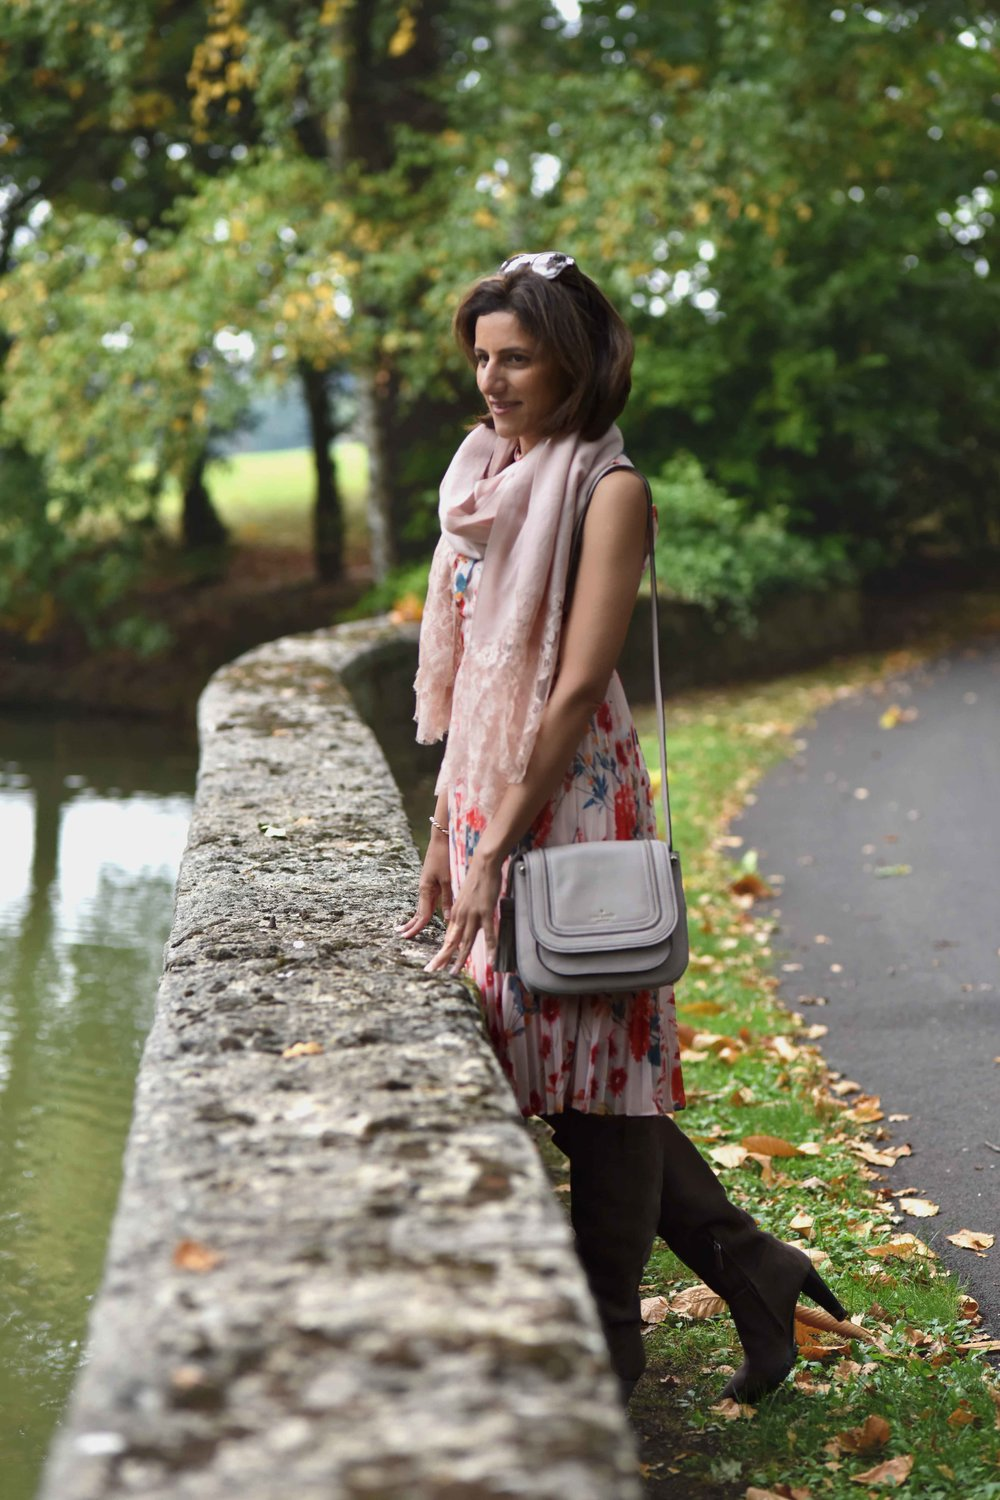 Karen Millen floral dress, cashmere scarf, Kate Spade bag. Photo: Nina Shaw. Image©thingstodot.com